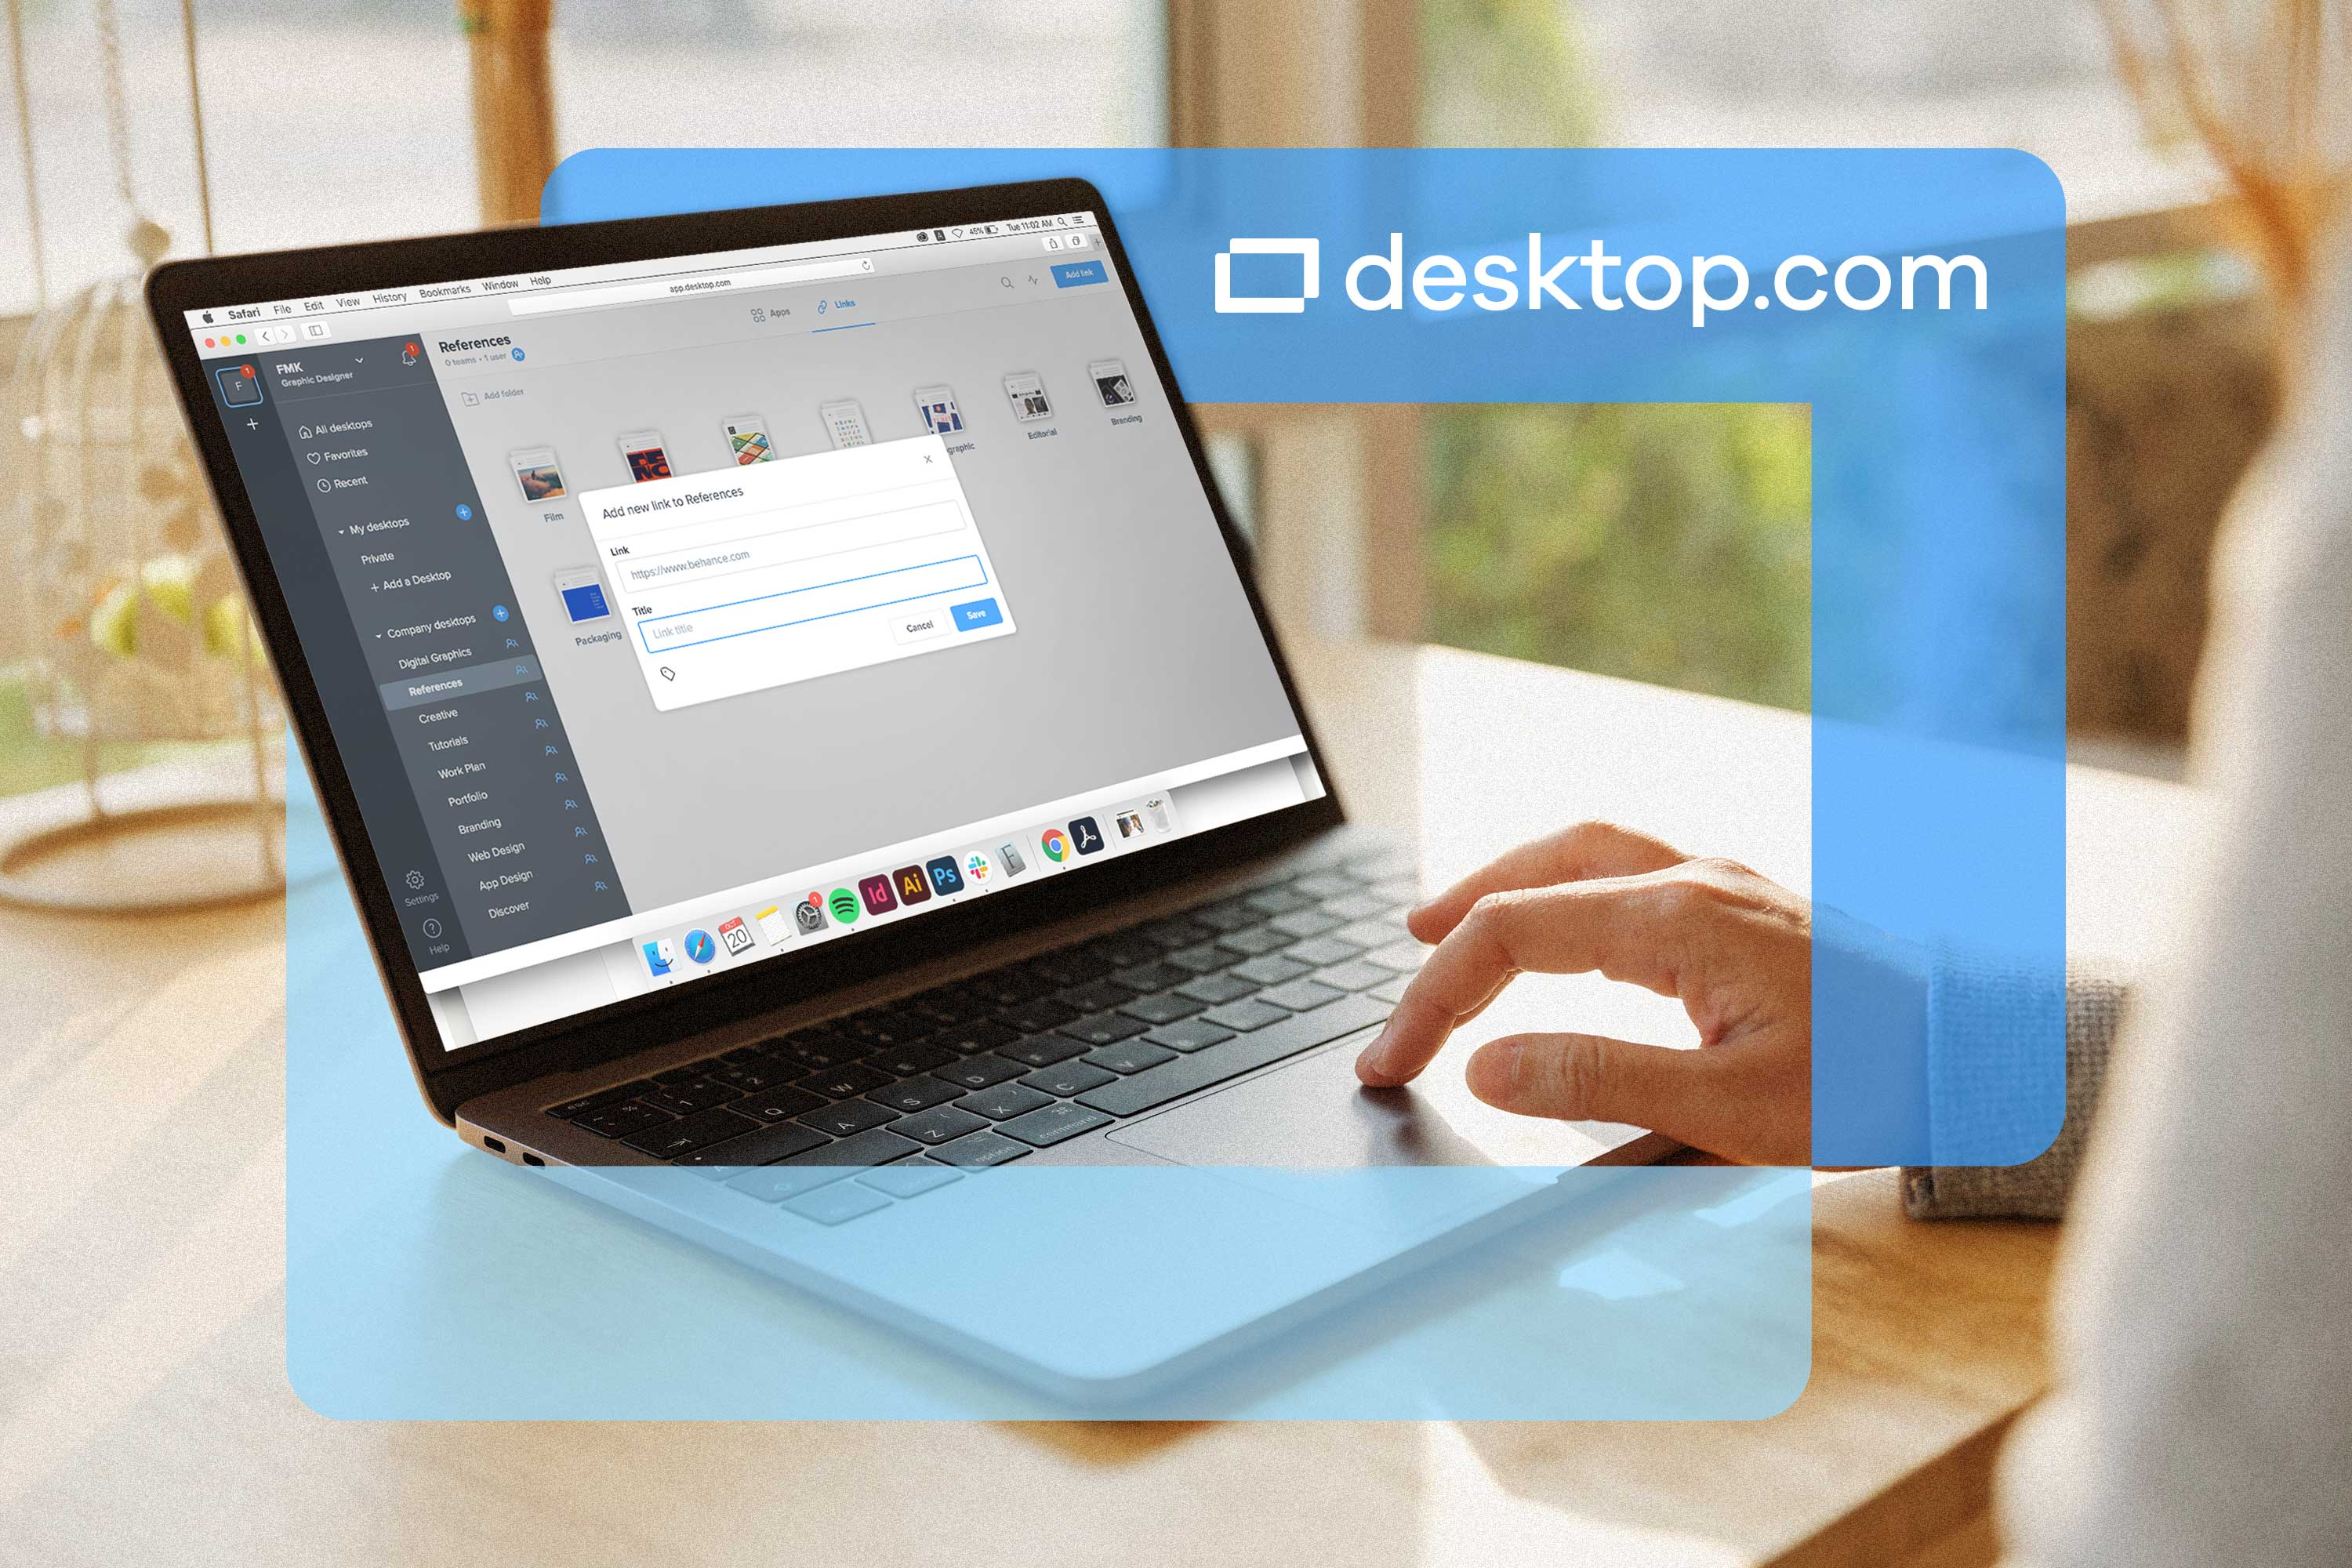 How-to-add-a-website-to-your-desktop-01